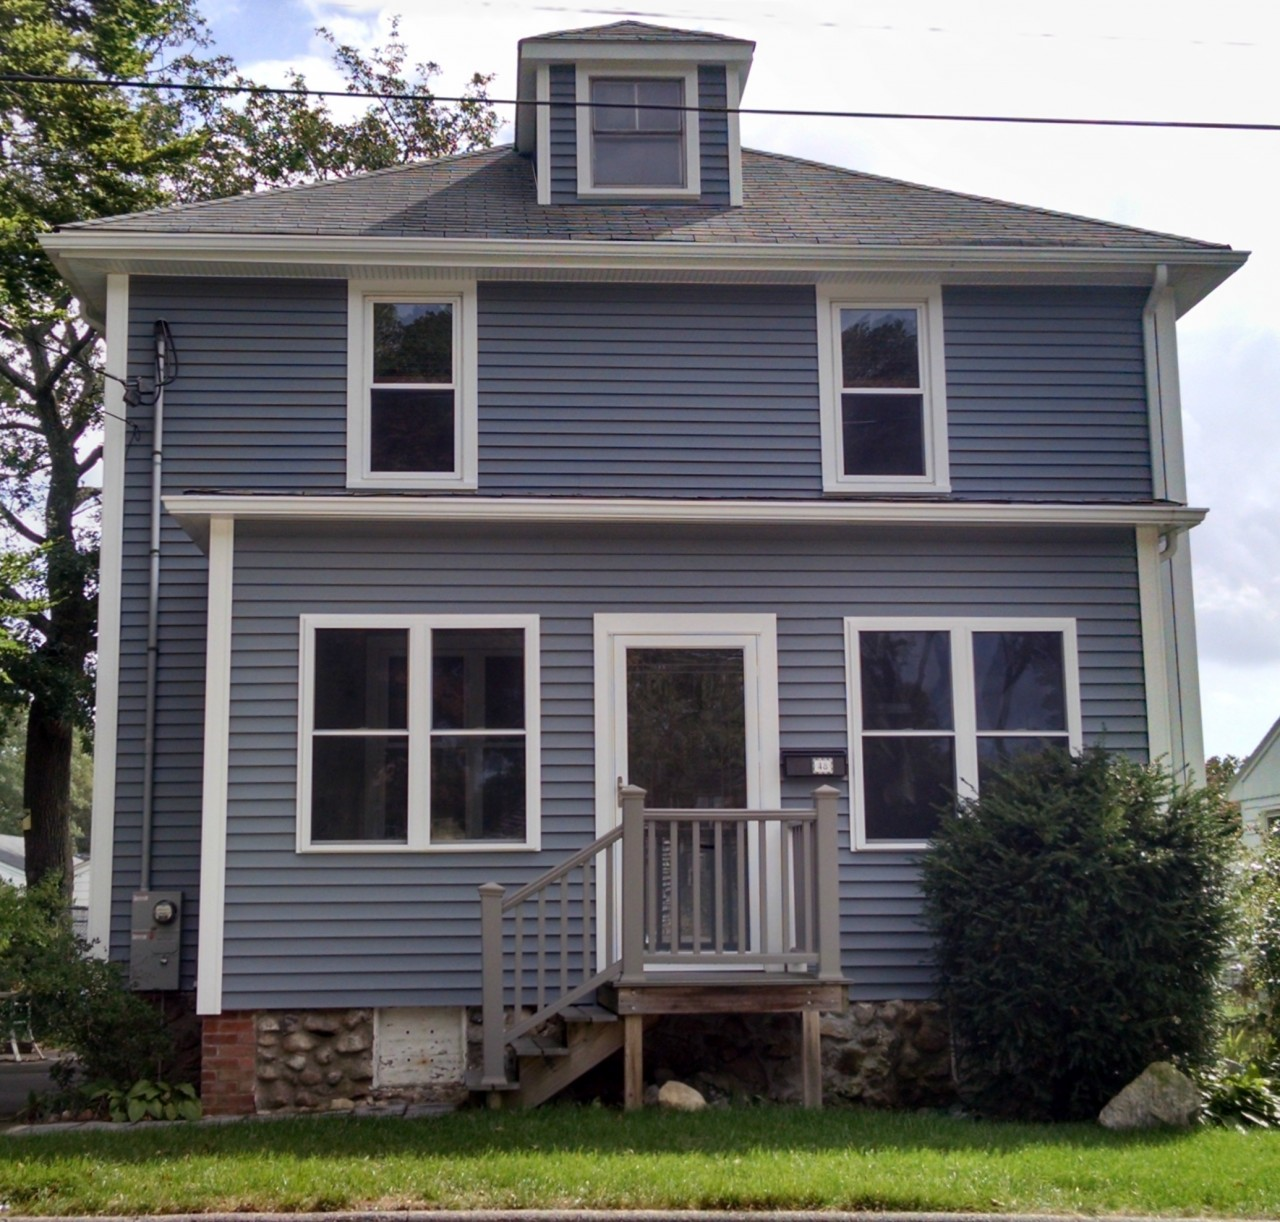 New bedford home now maintenance free with vinyl siding for Harvey siding colors